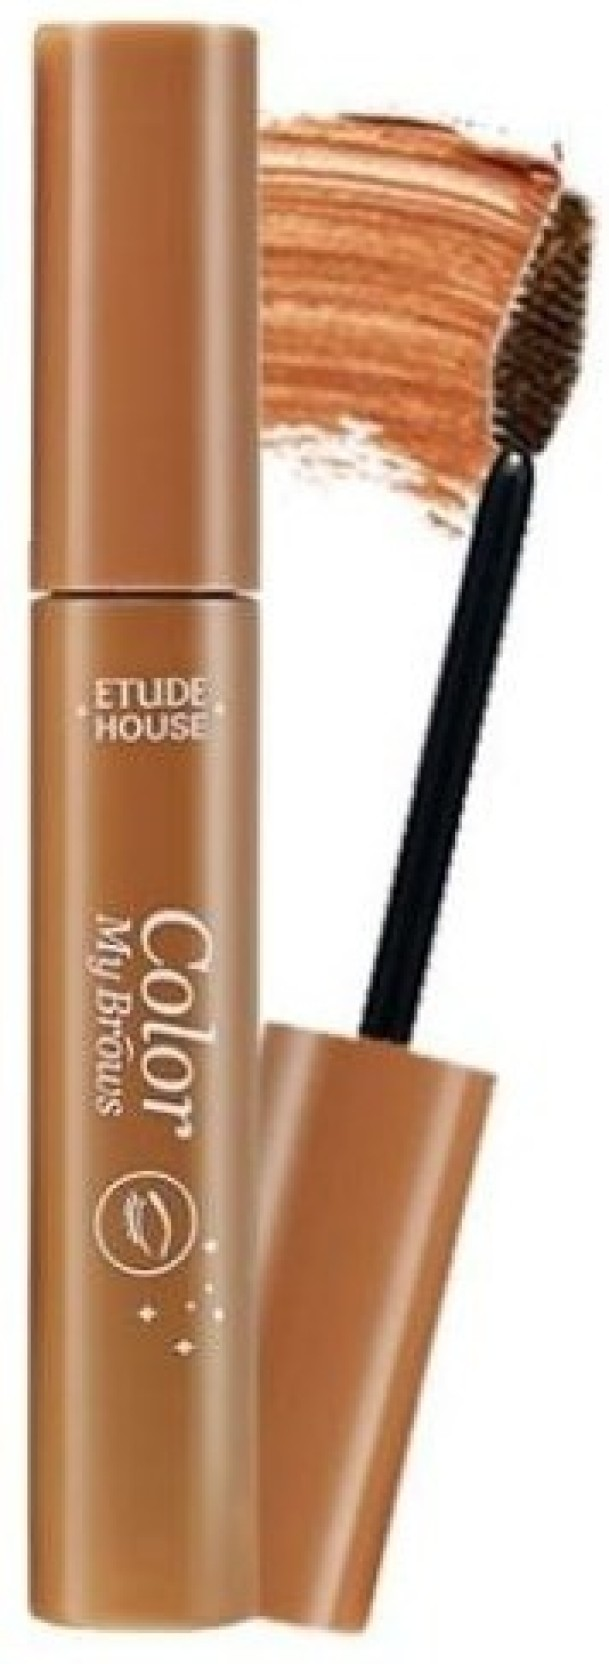 Product Page Large Vertical Buy At Etude House Color My Brow Brows Mascara 9 G Home